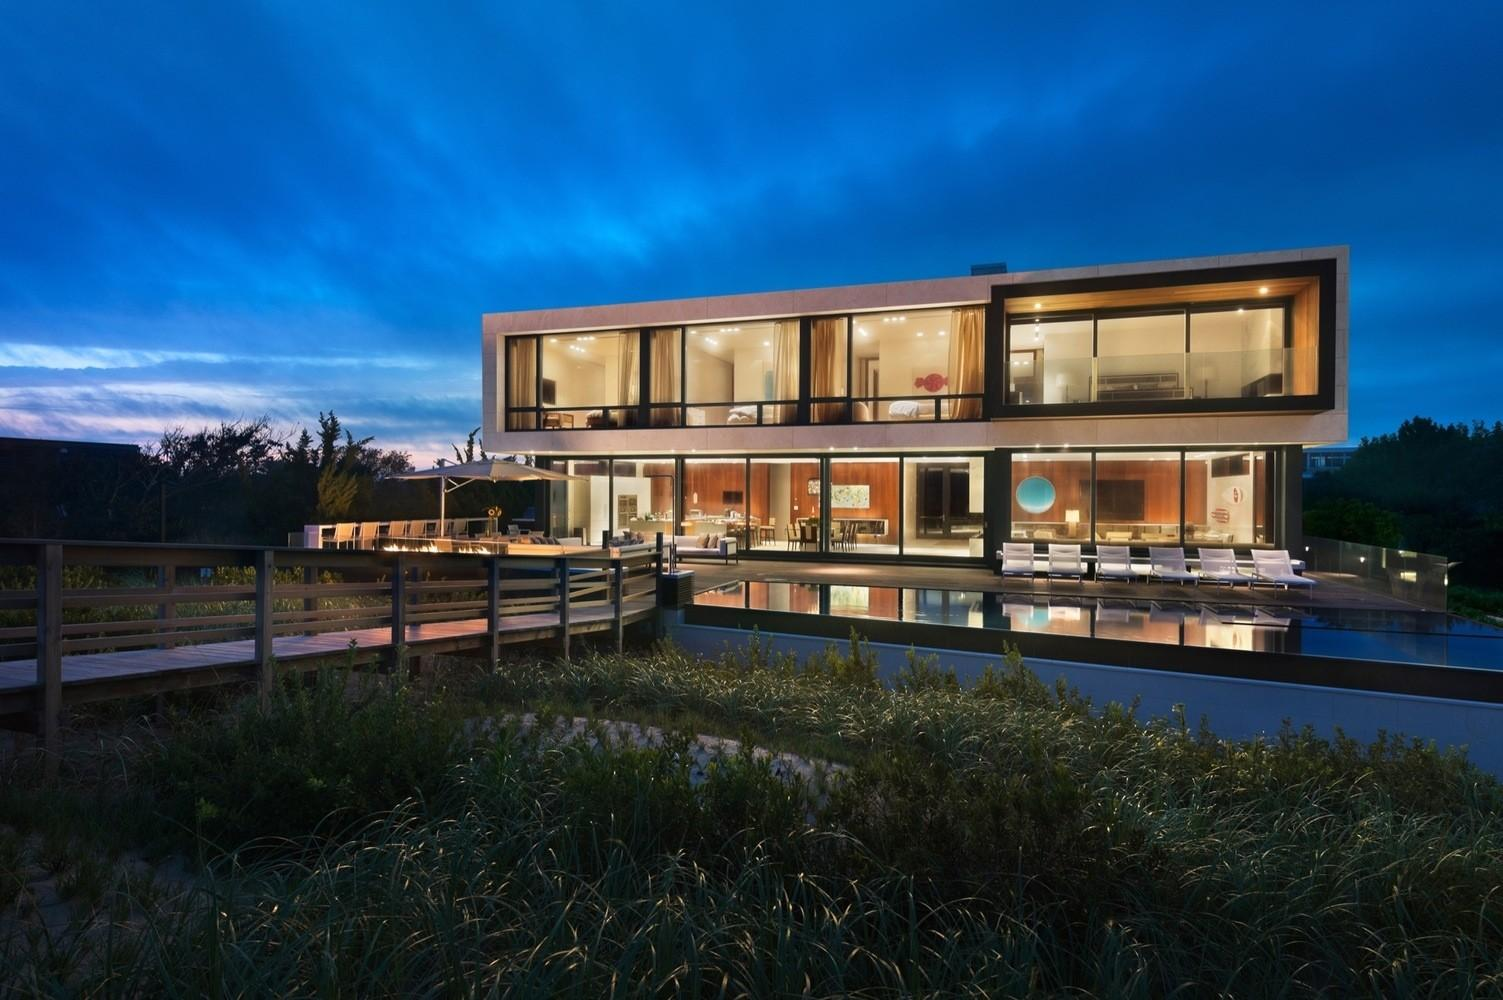 Creative Oceanfront Home Designed Accommodate Flood